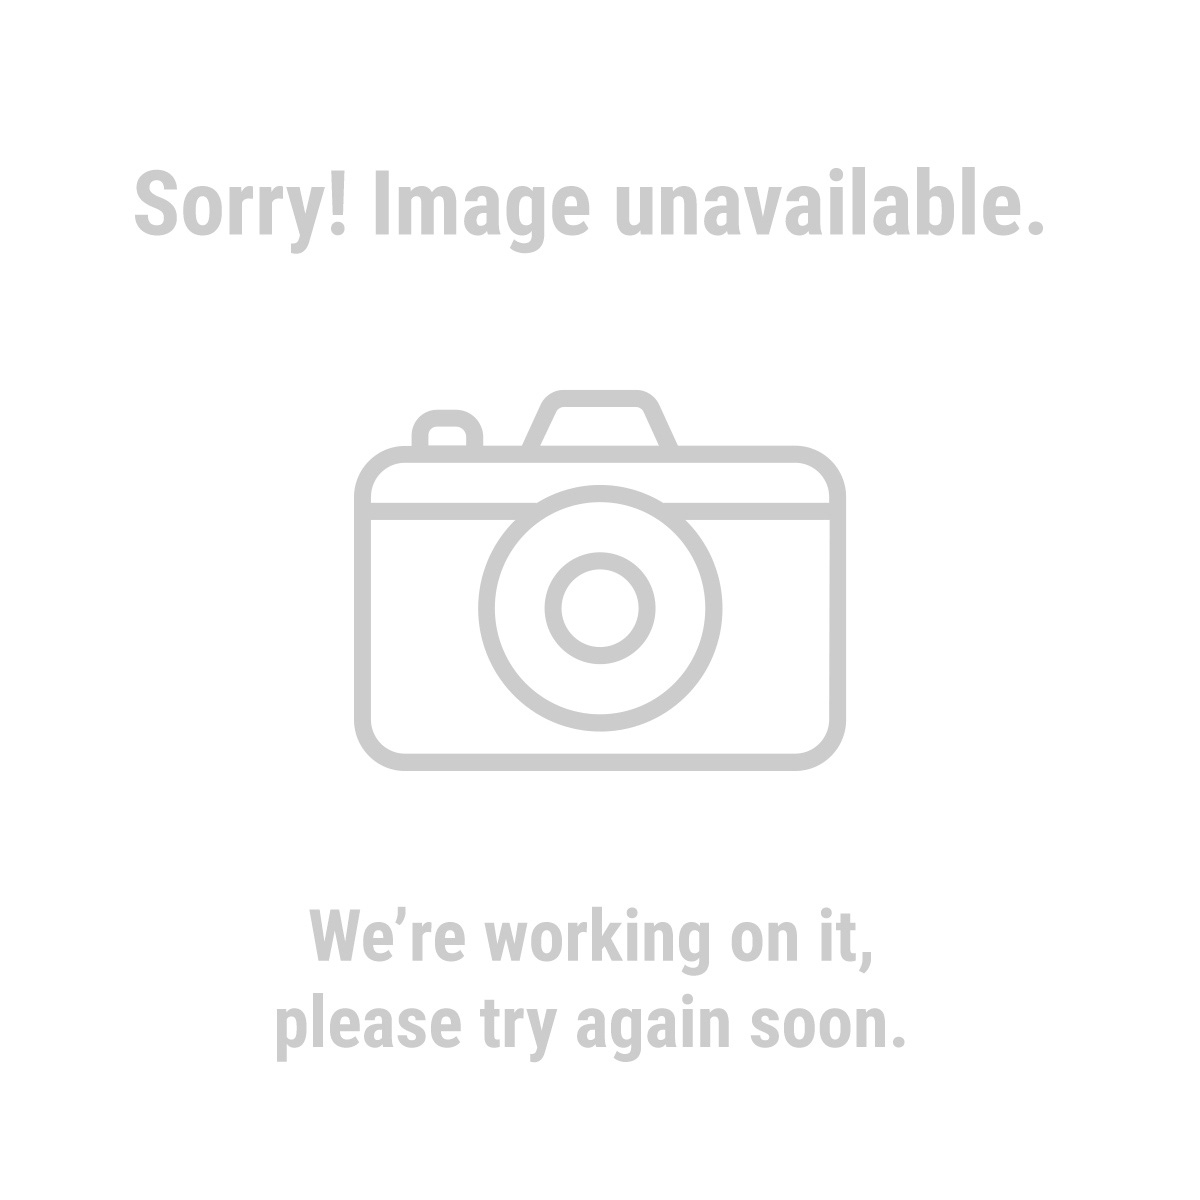 12 Piece 17 in. x 14 in. 100% Cotton Terry Cloth Towels